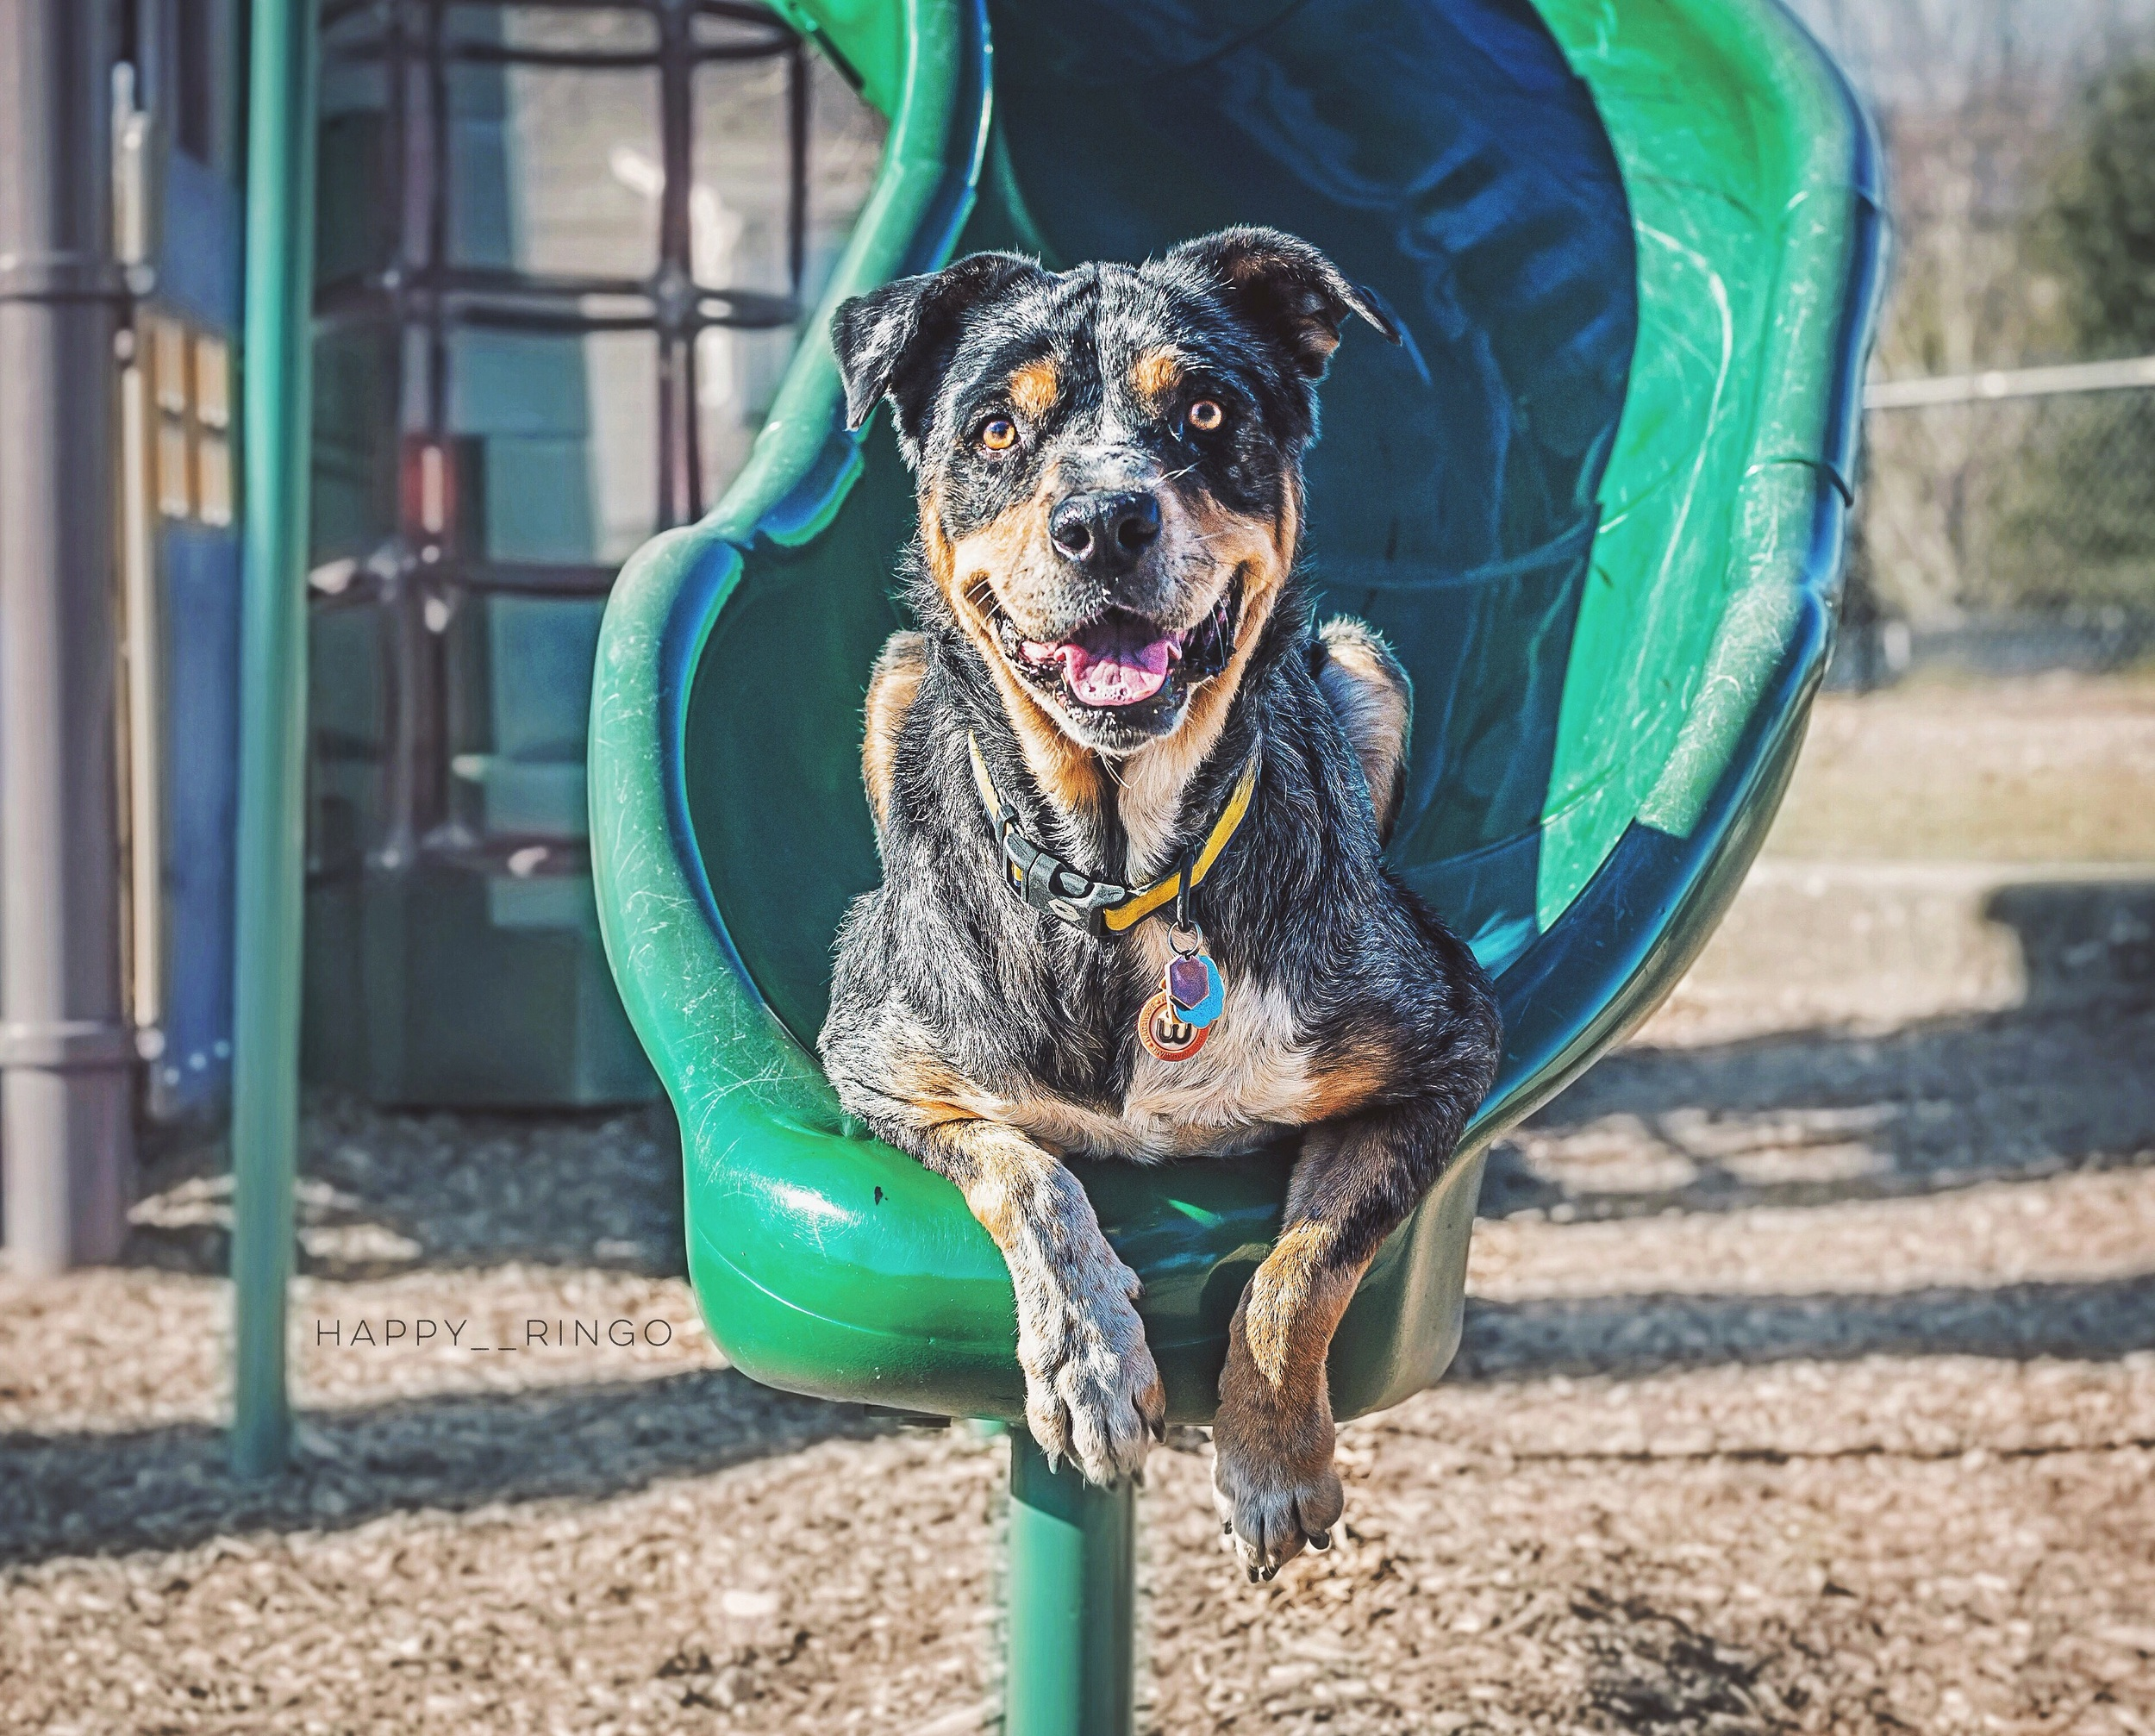 Hanging out at the playground :)